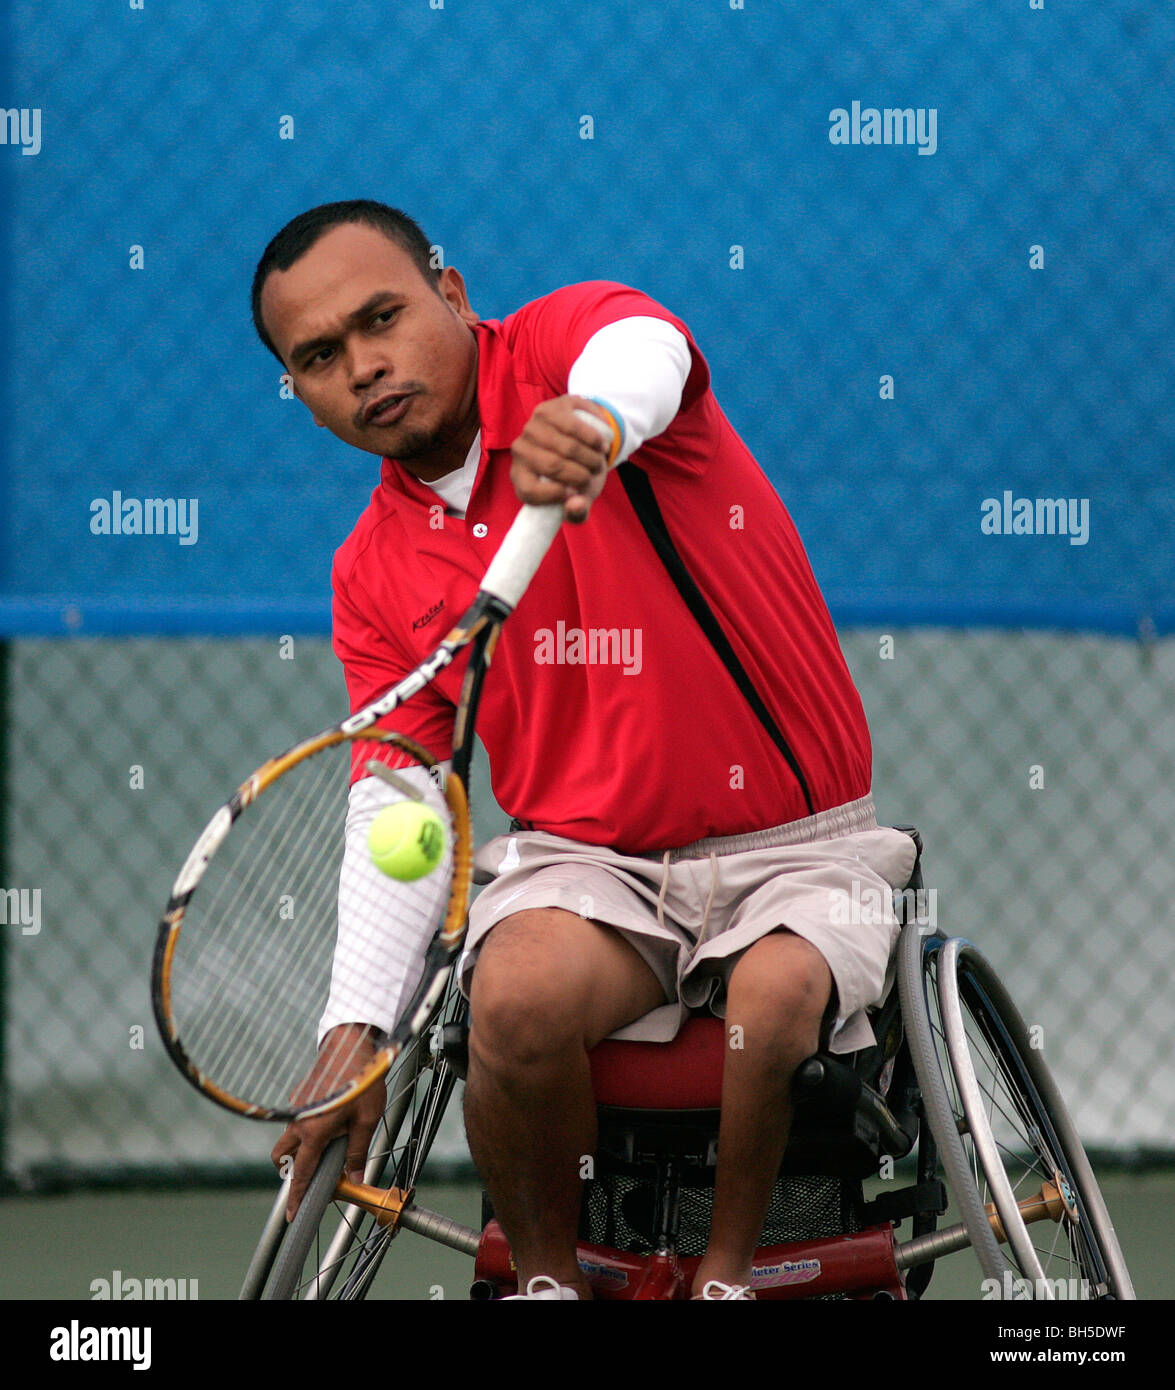 A competitor takes part in the Invacare World Cup of wheelchair tennis, held at Nottingham, 27th July - 2nd August. - Stock Image